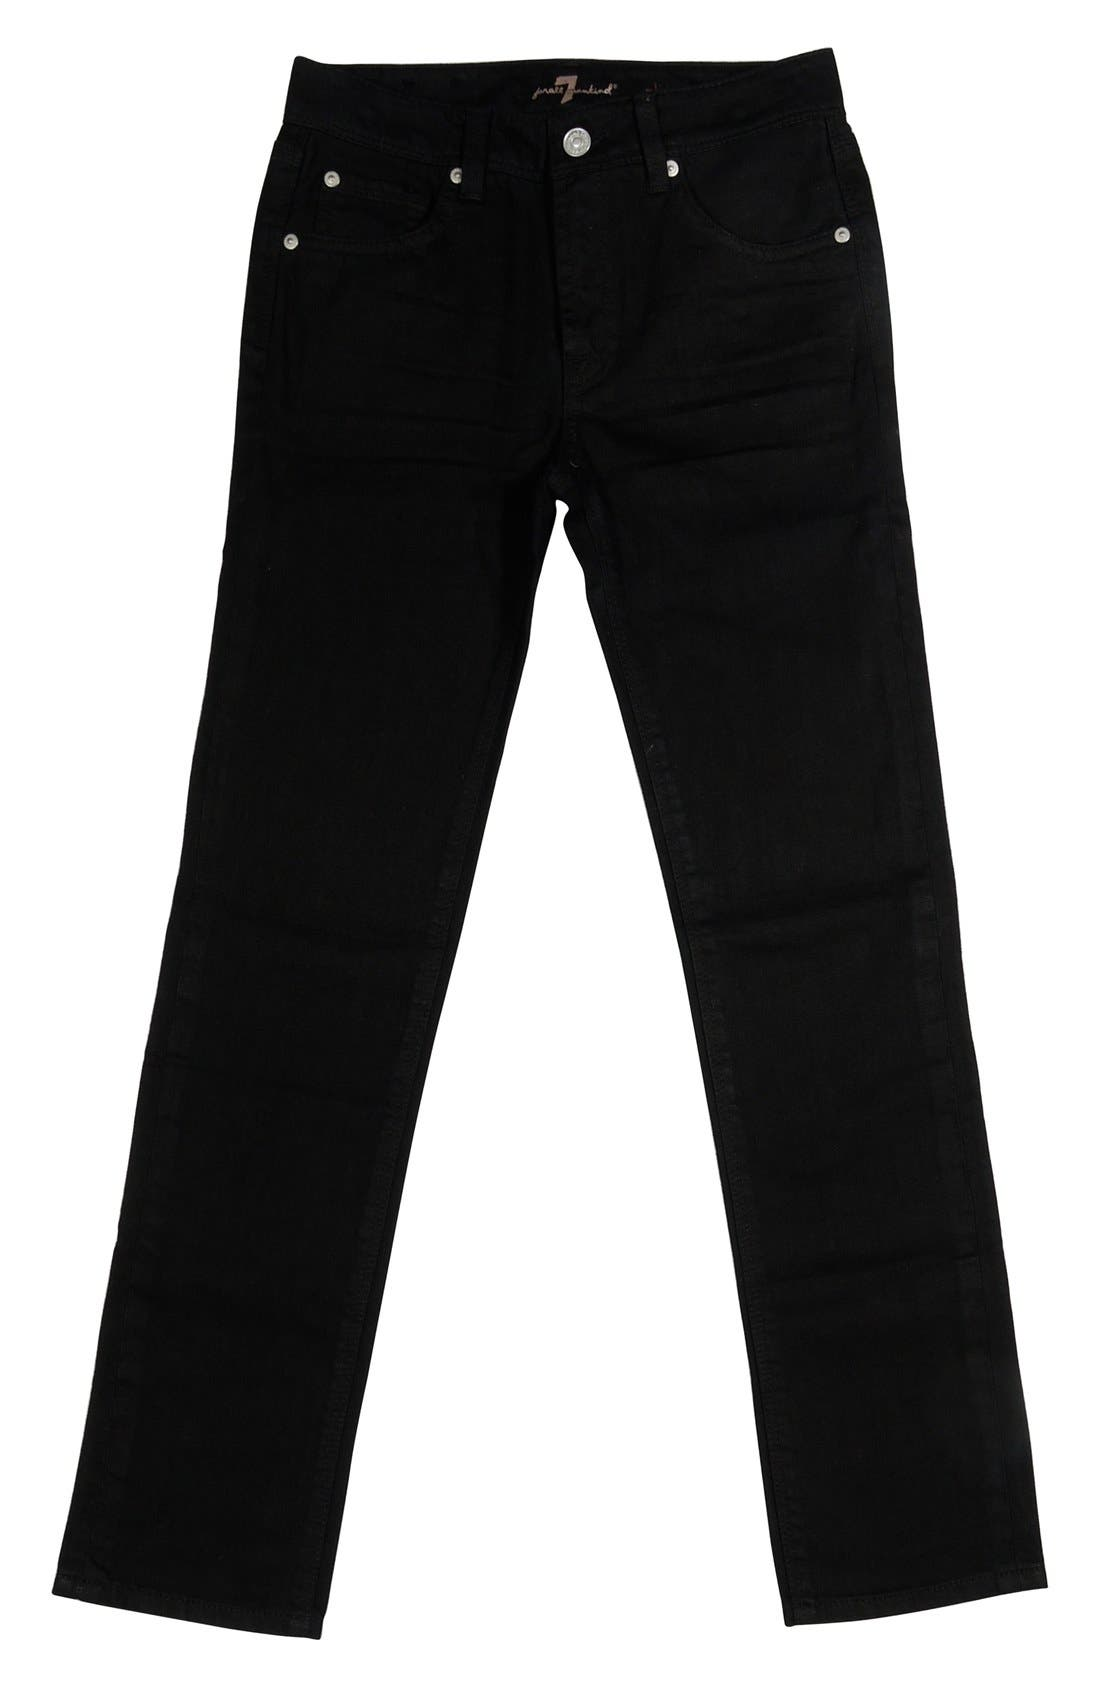 'Slimmy' Jeans,                         Main,                         color, 002